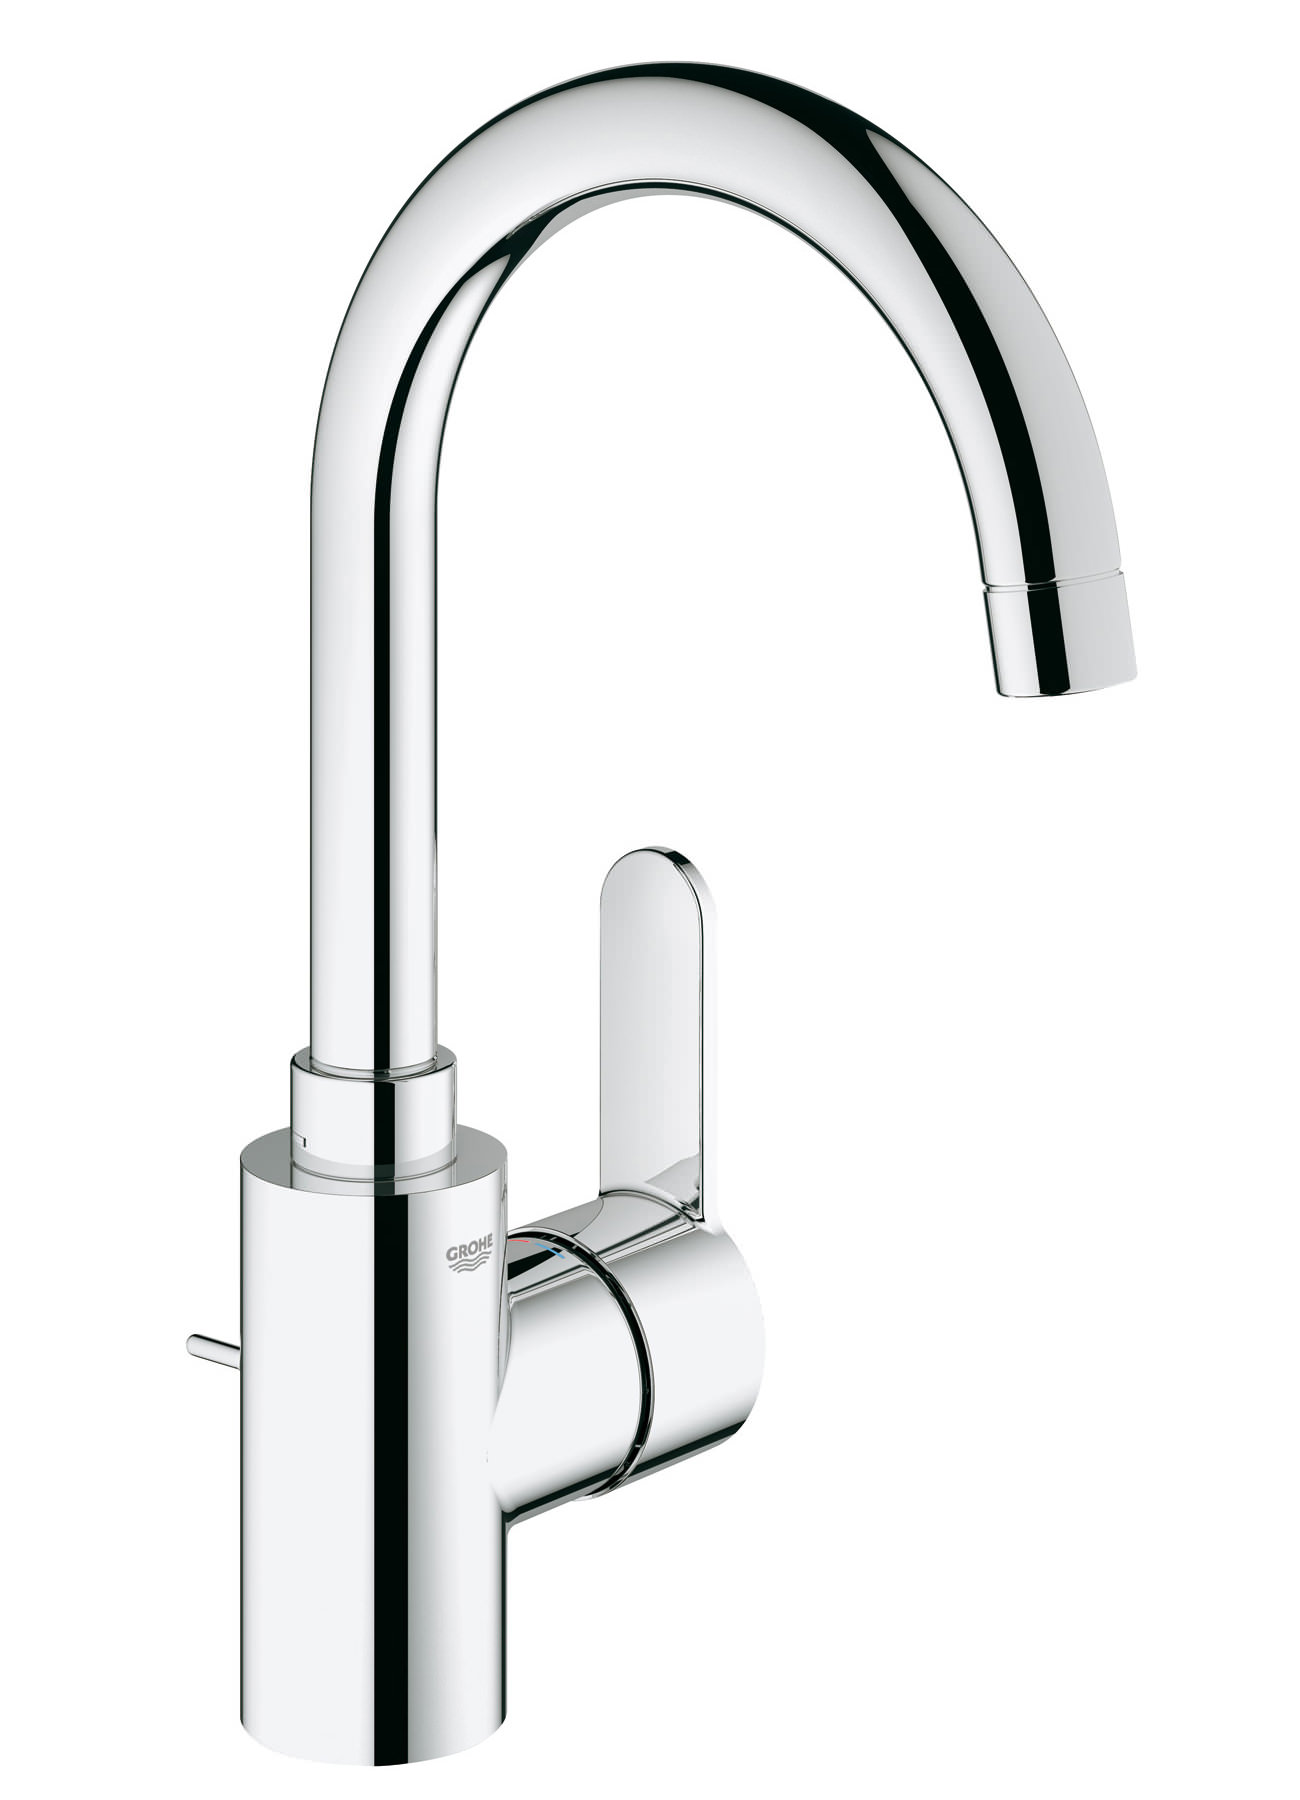 Grohe Eurostyle Cosmo Half Inch Basin Mixer Tap - 23043002